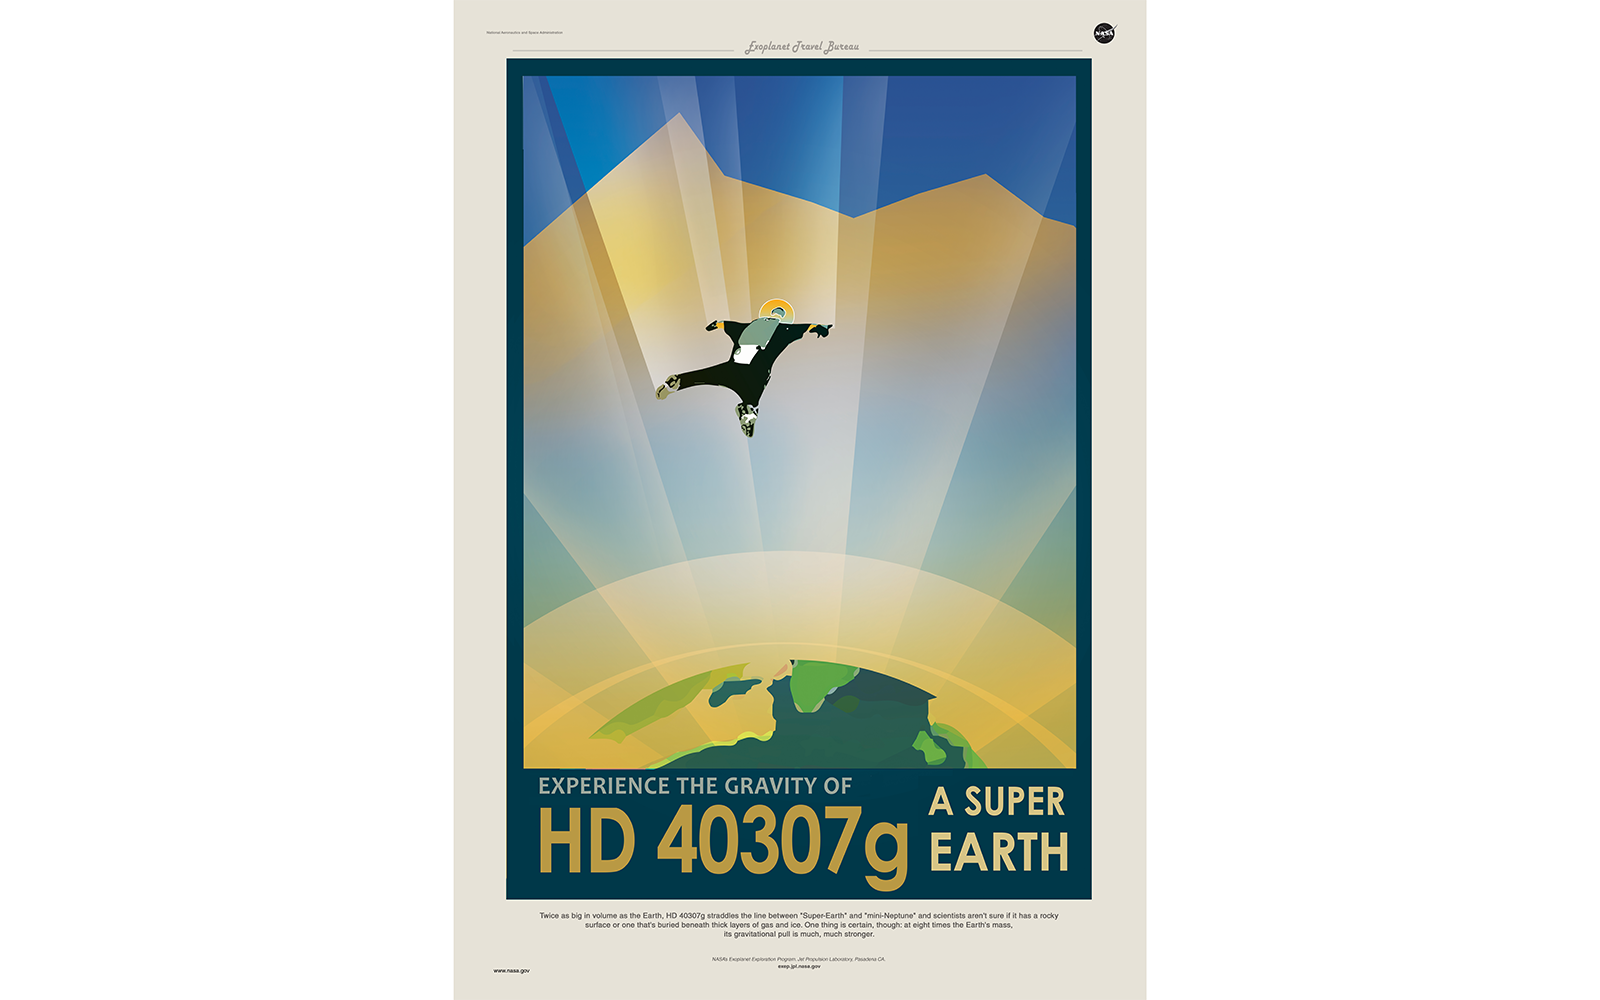 Vintage Space Travel Posters: Base Jumping on HD 40307g